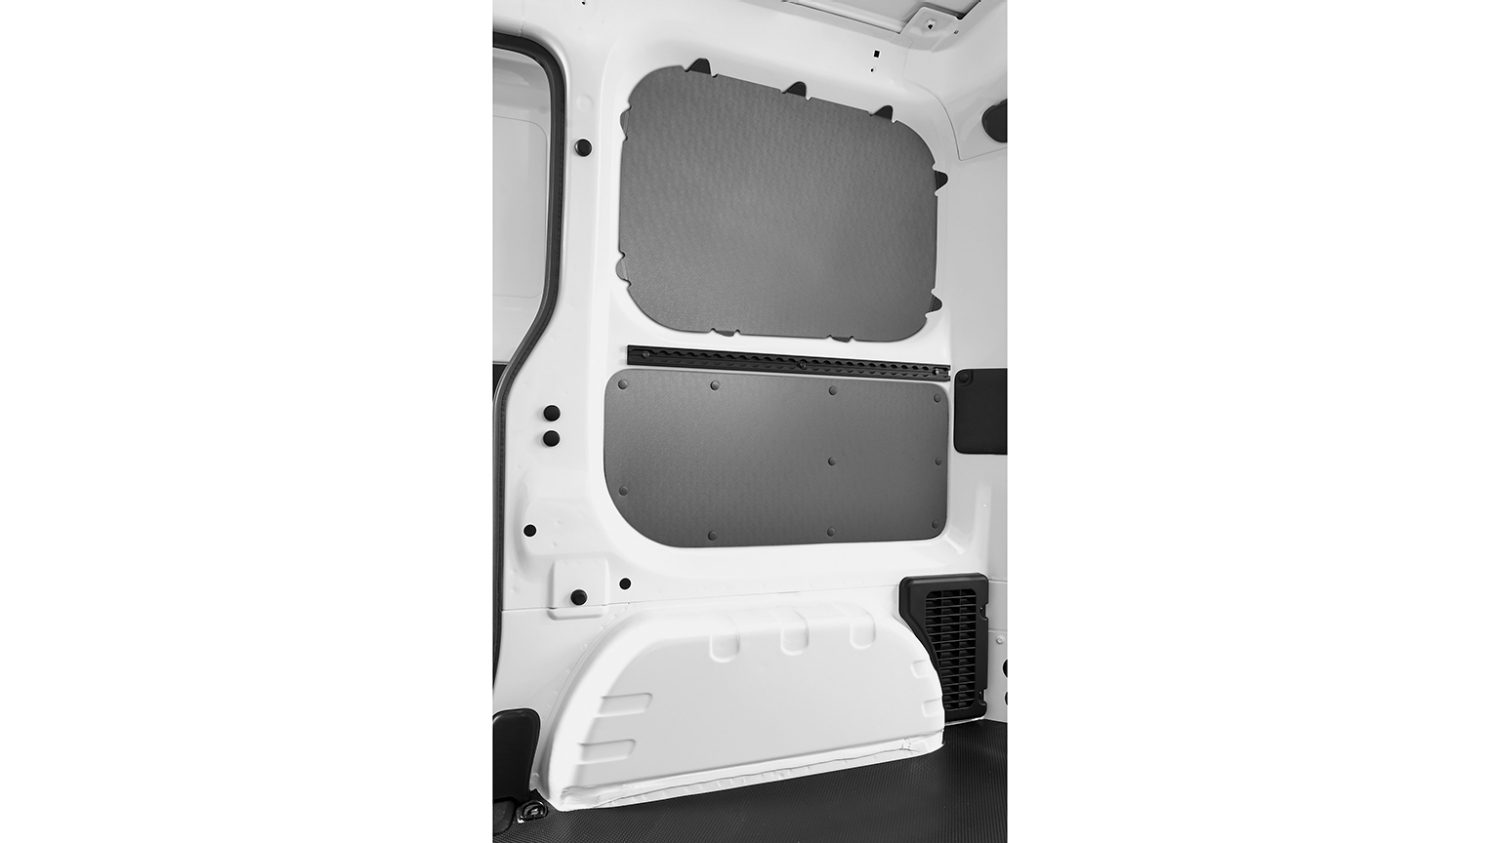 Nissan NV200 - Interior - Rear panel plastic protection